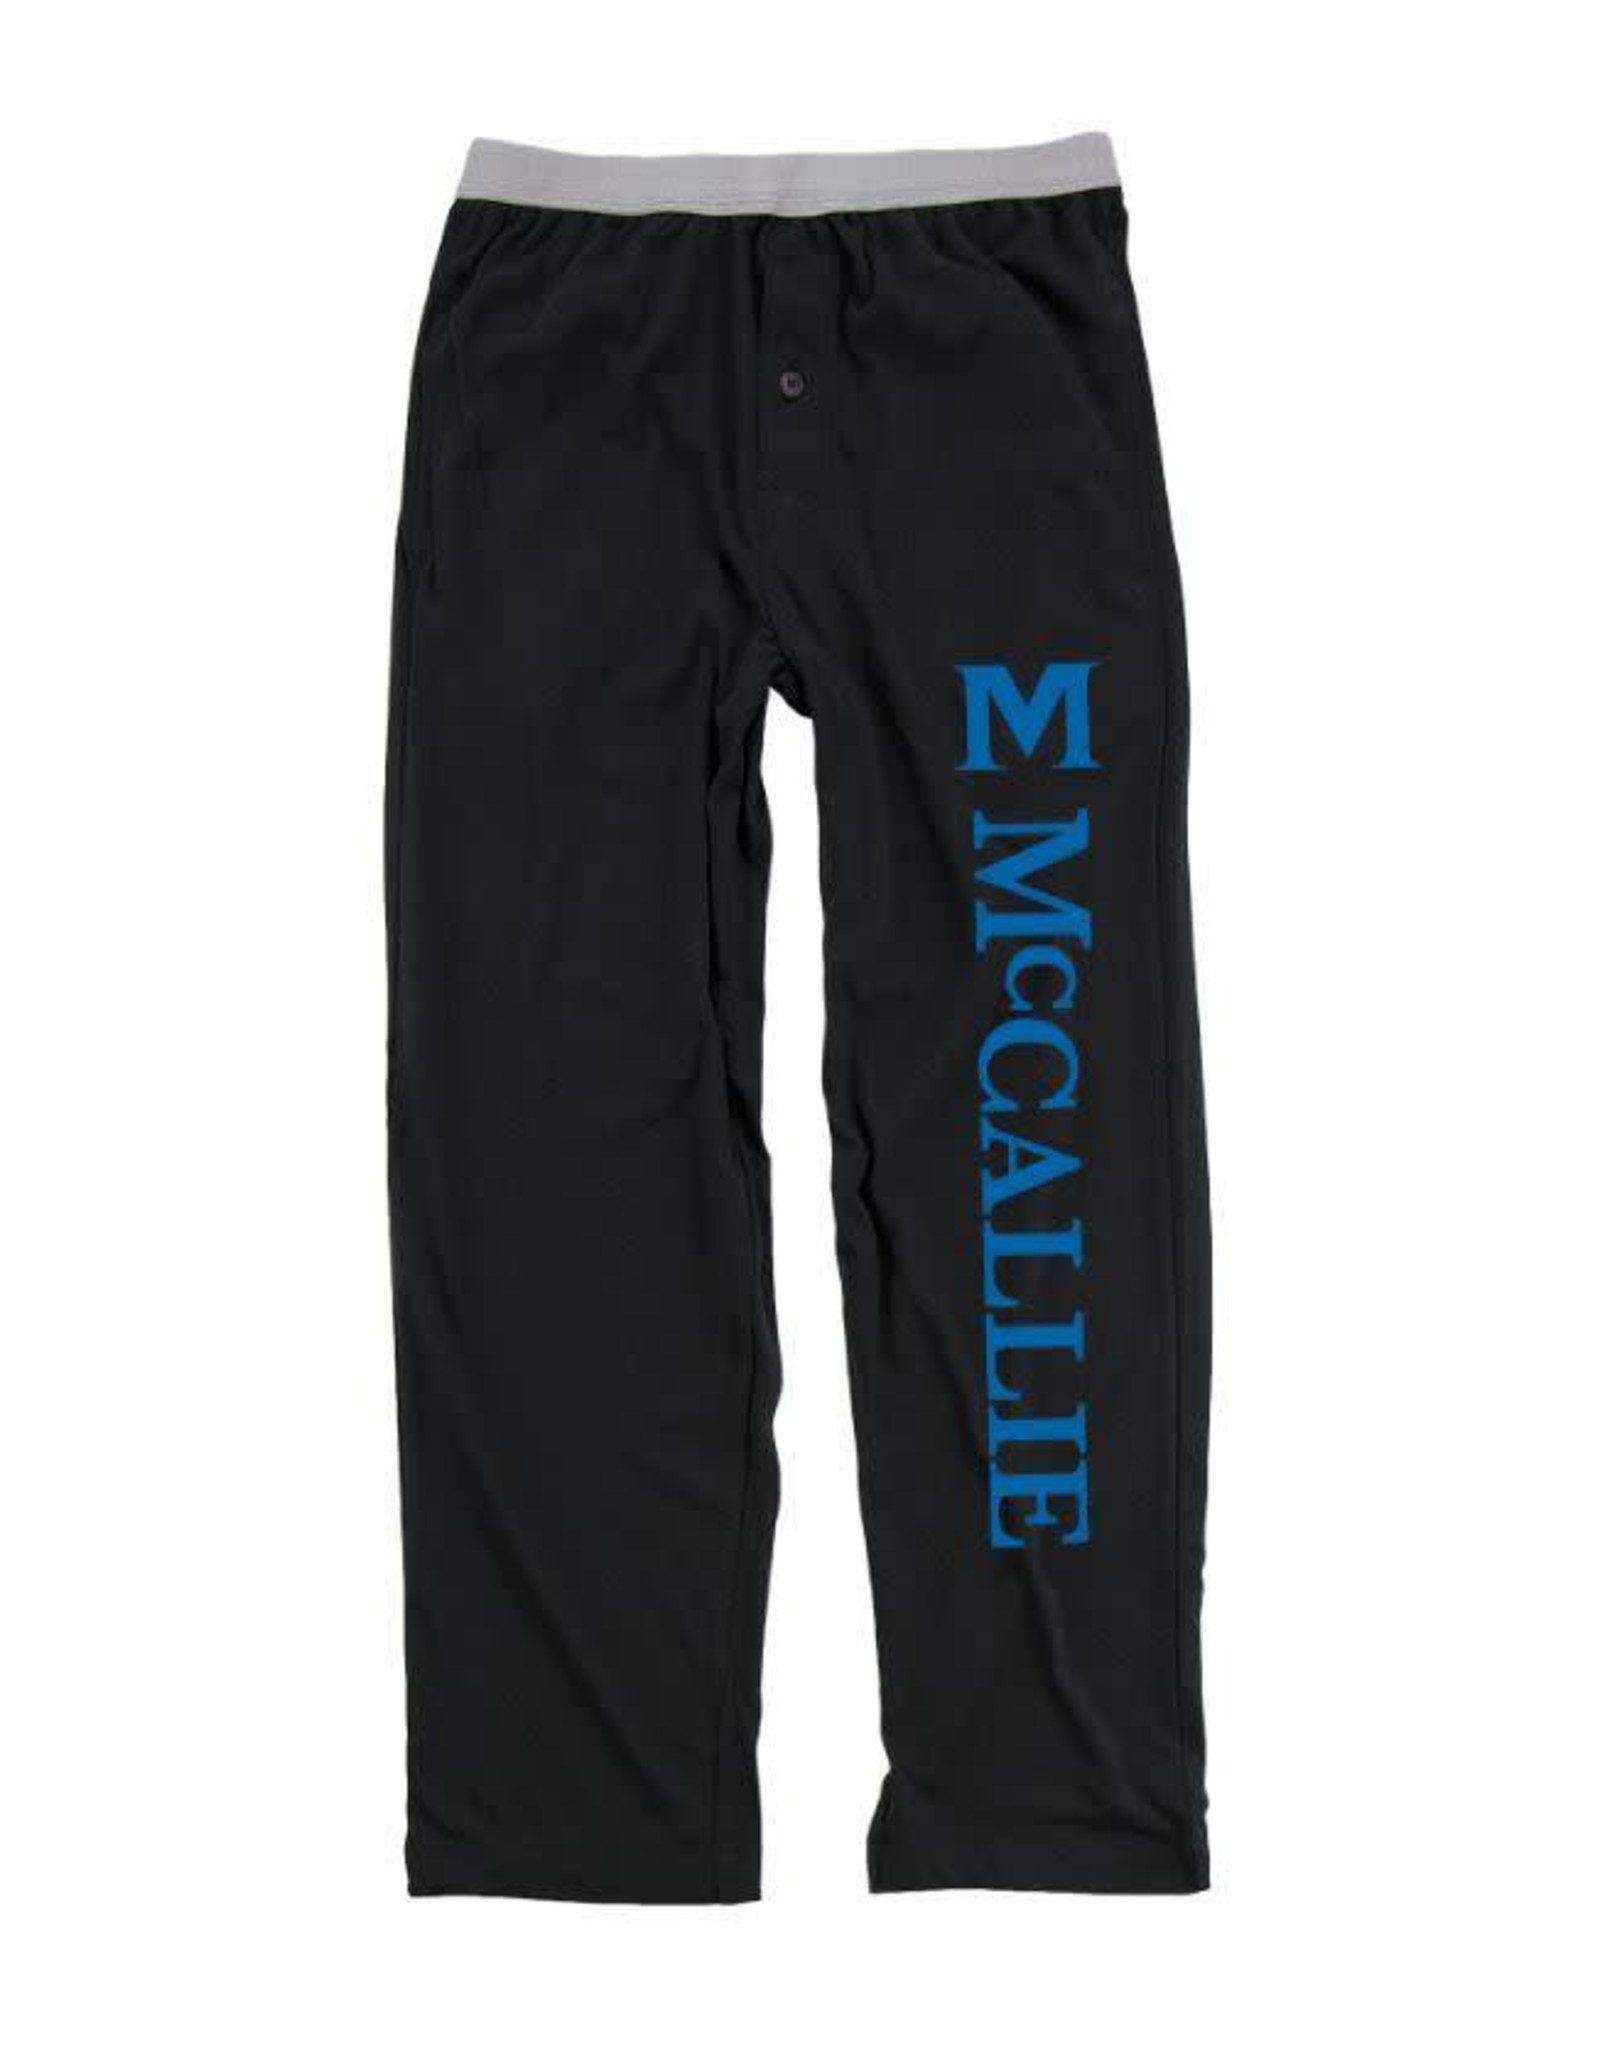 BOXERCRAFT LOUNGE PANTS